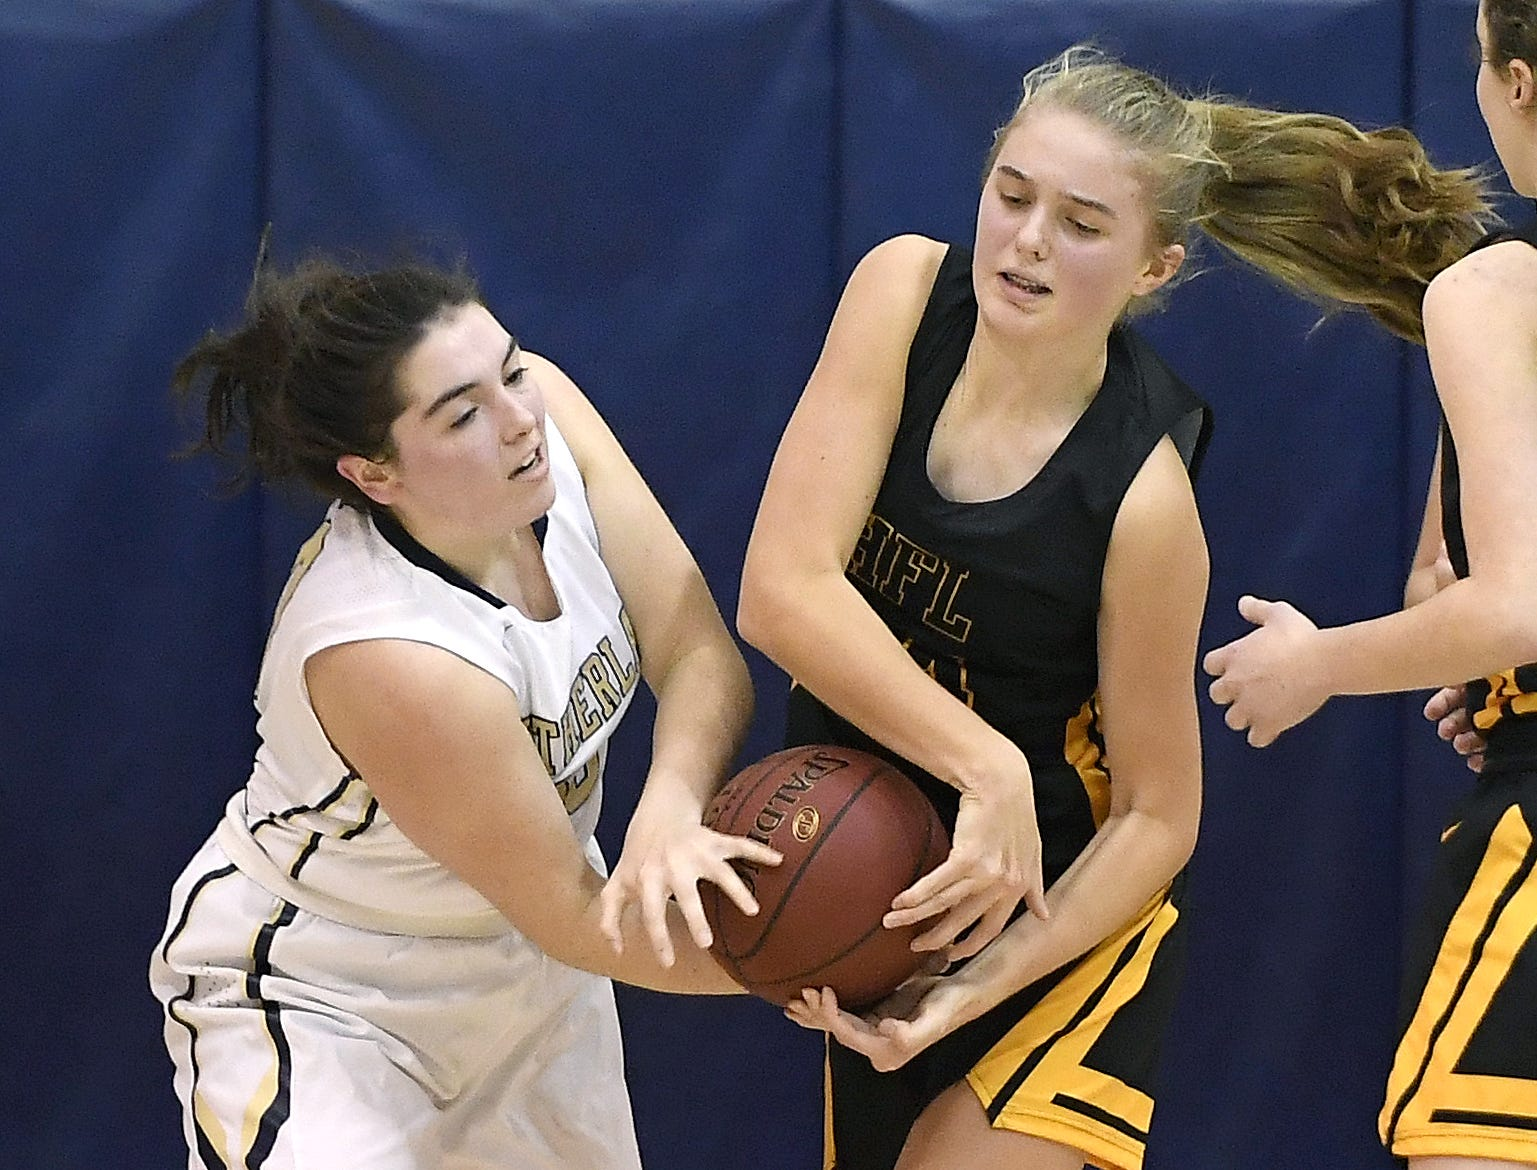 Pittsford Sutherland's Libby Kenneally, left, fights for possession against HF-L's Teagan Kamm during a regular season game played at Pittsford Sutherland High School on Thursday, Nov. 29, 2018. Pittsford Sutherland beat Honeoye Falls-Lima in overtime 53-47.